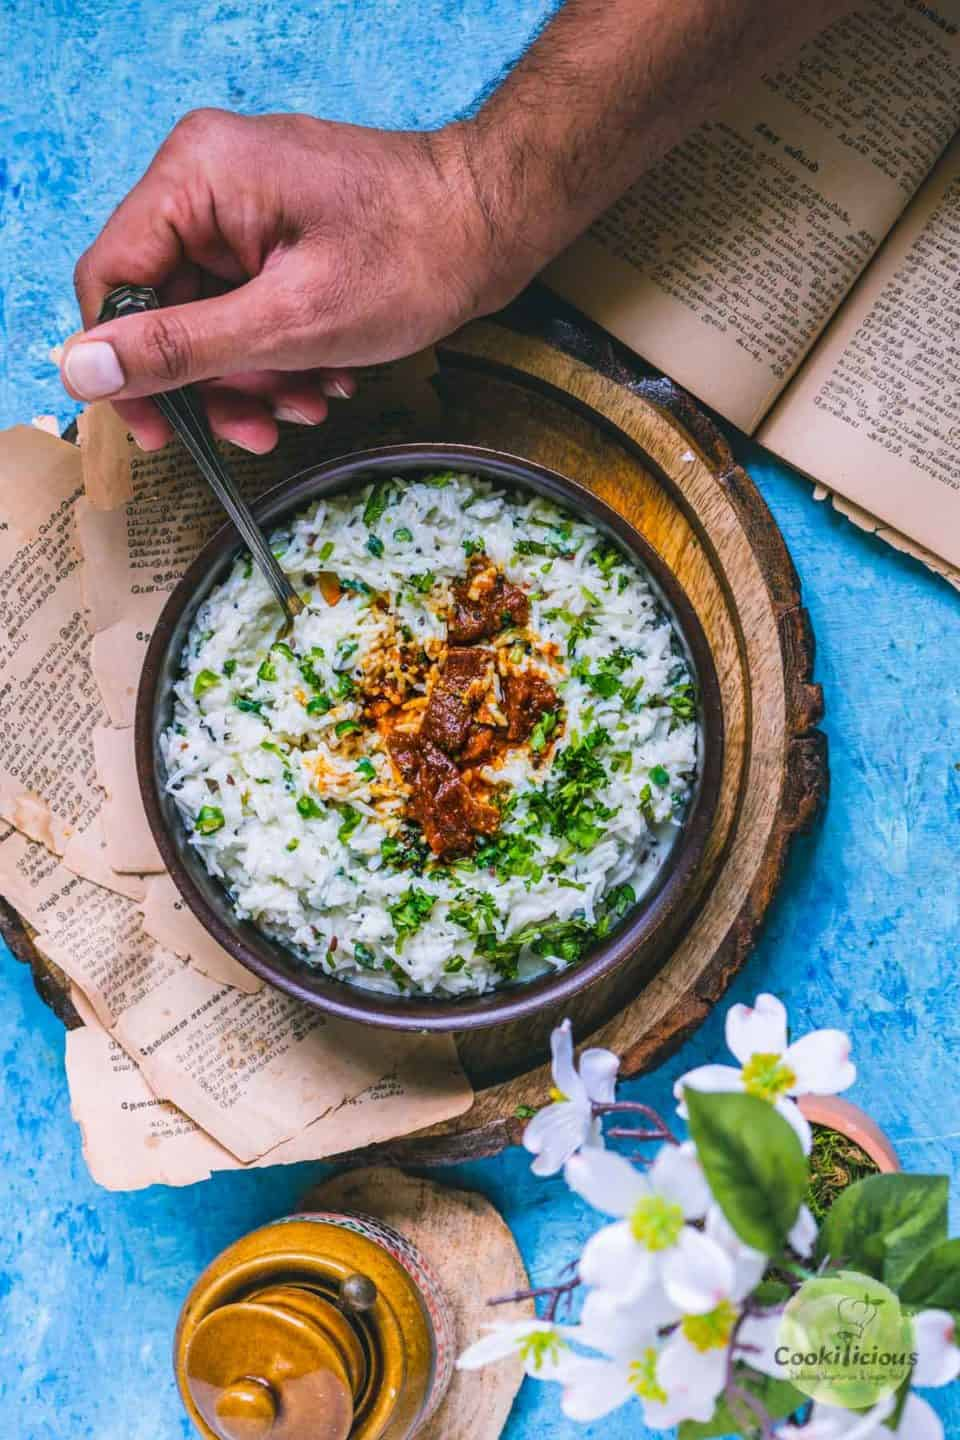 a hand digging into a bowl of dahi bhaat with a spoon